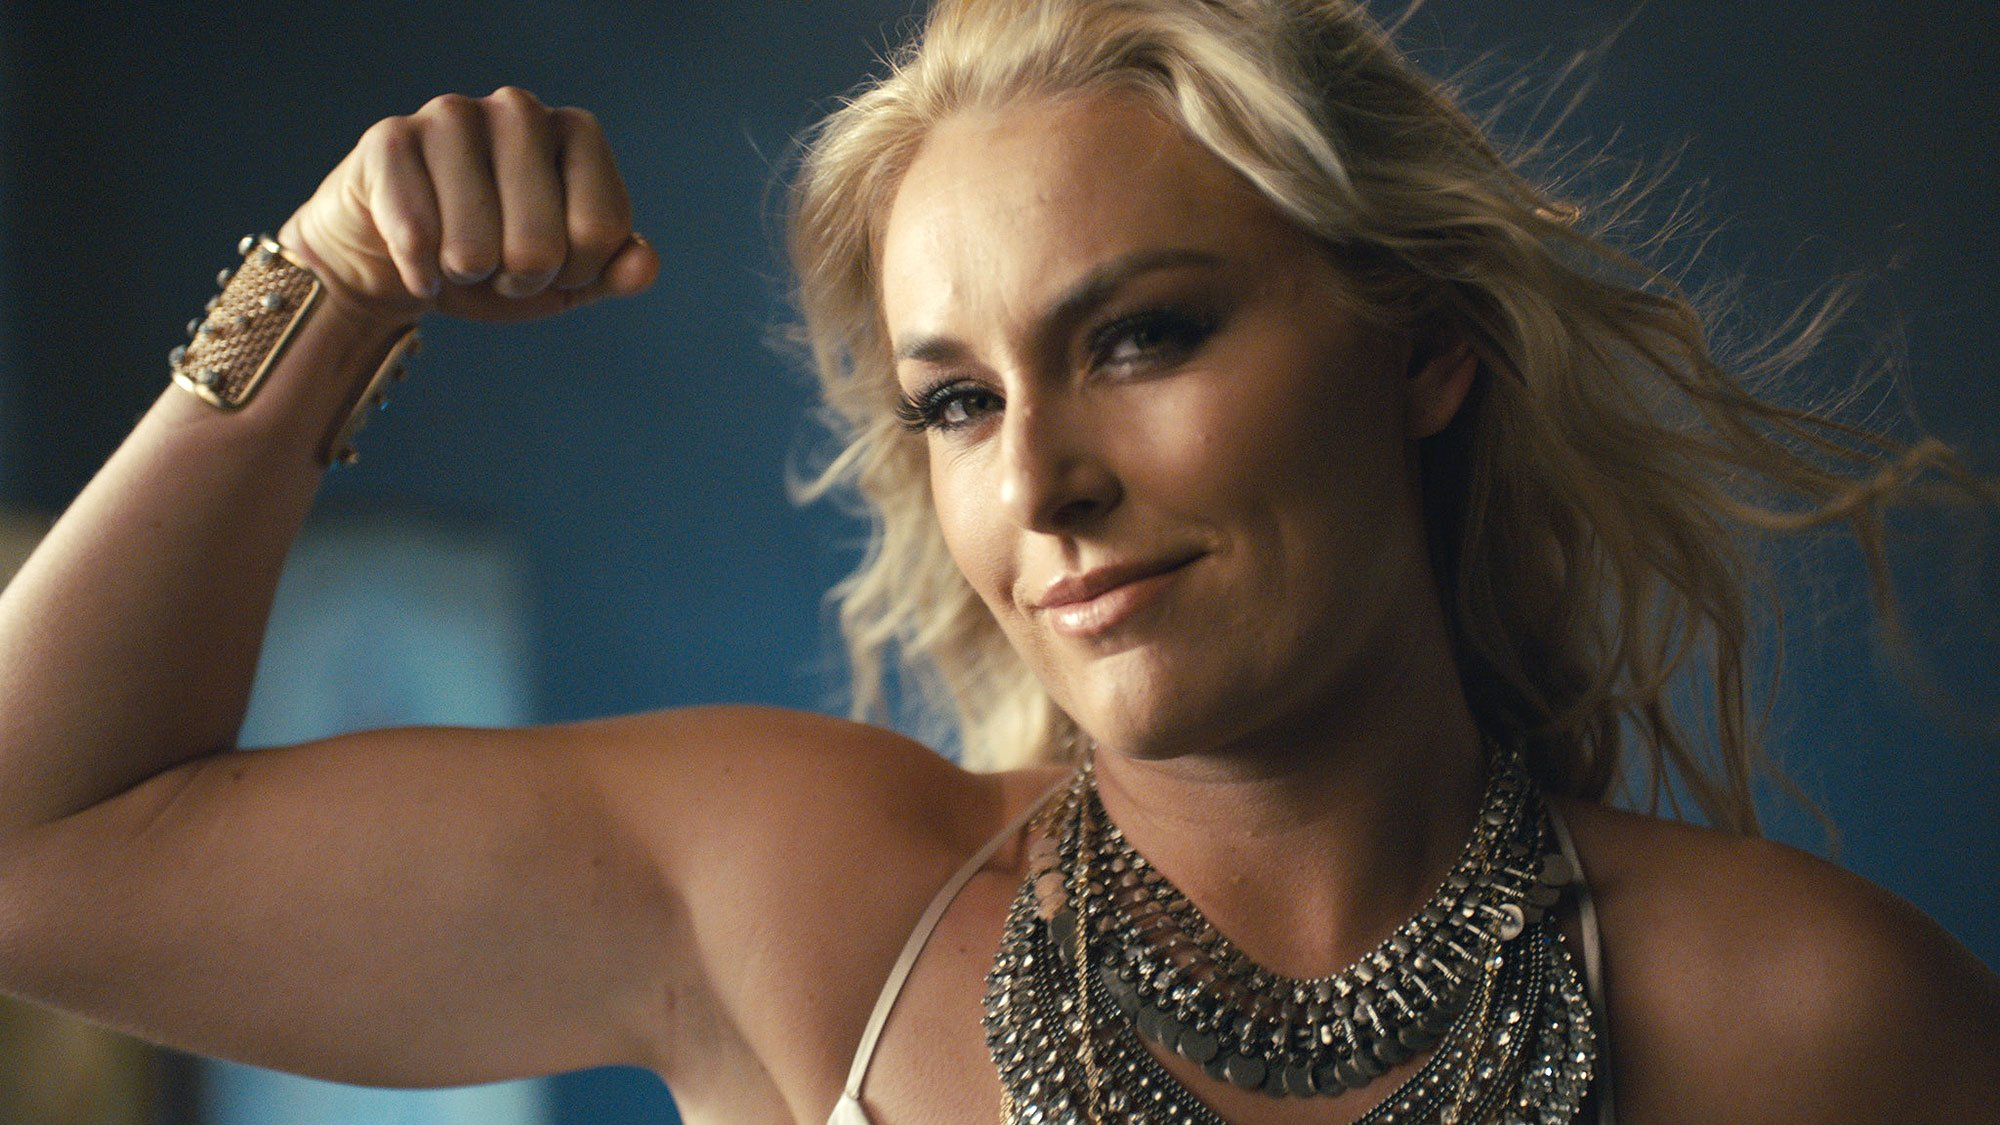 Super Bowl LII: Lindsey Vonn is on fire in Olympics Super Bowl ad